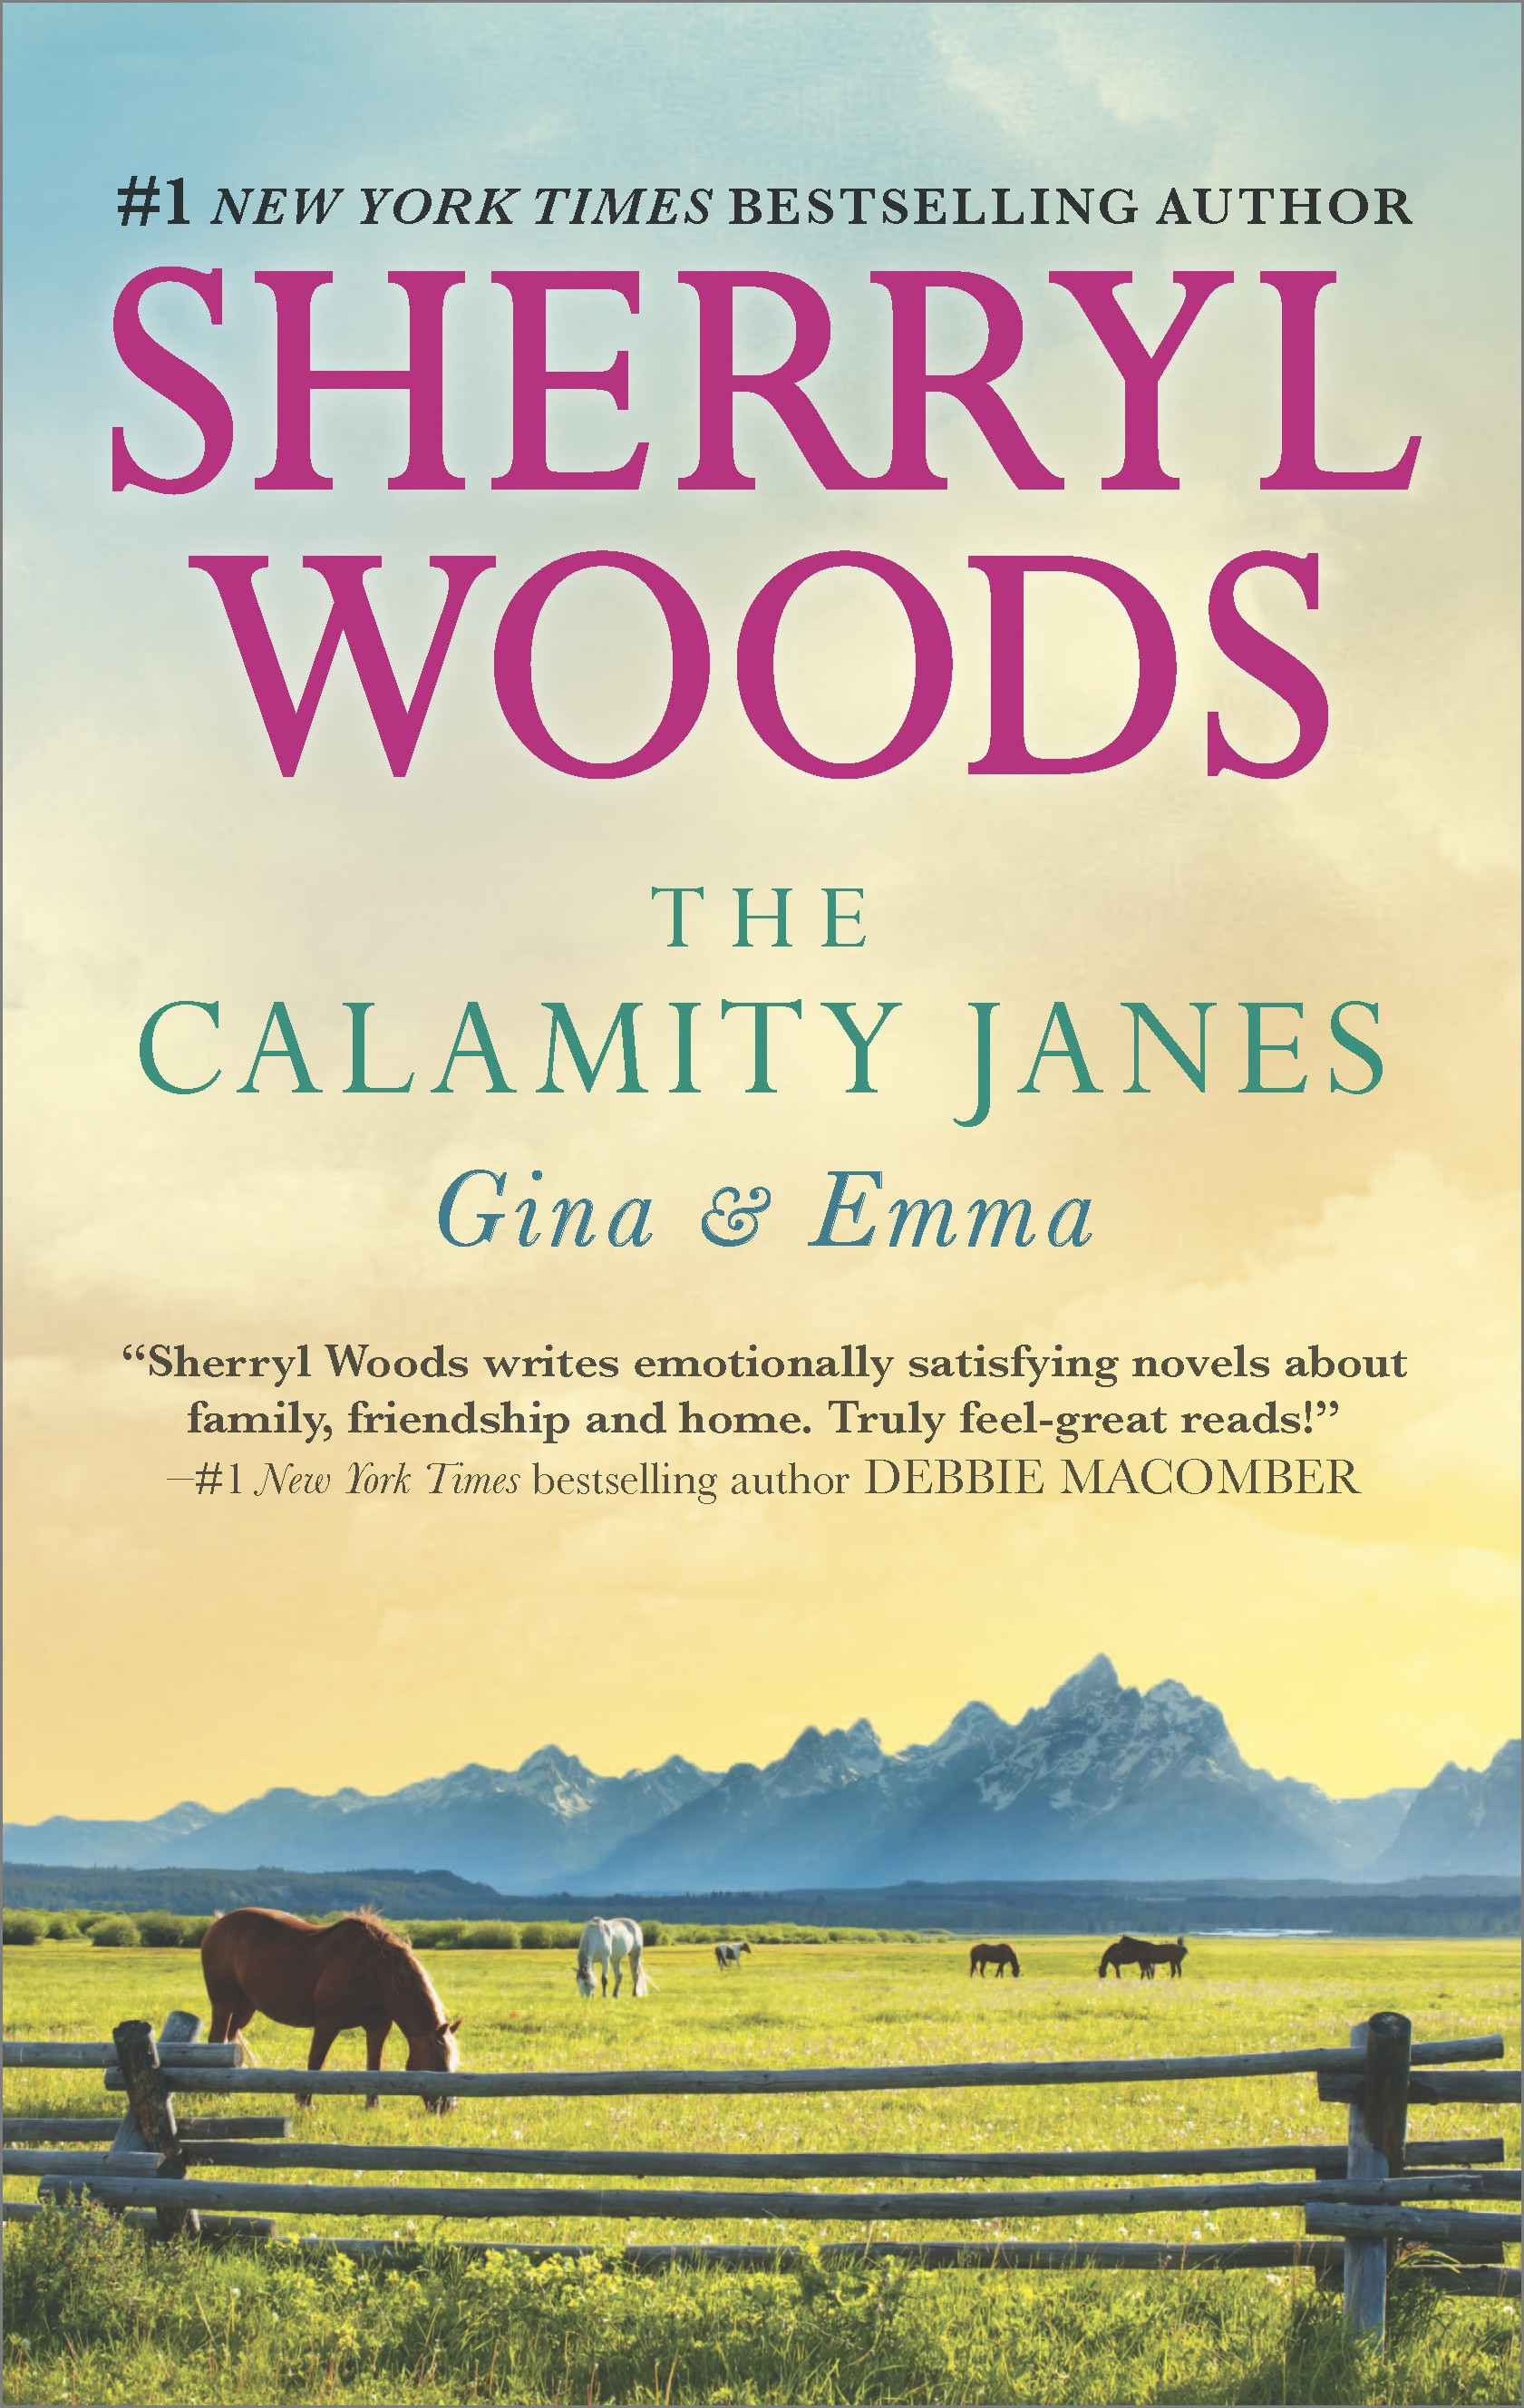 Cover Image of The Calamity Janes: Gina & Emma